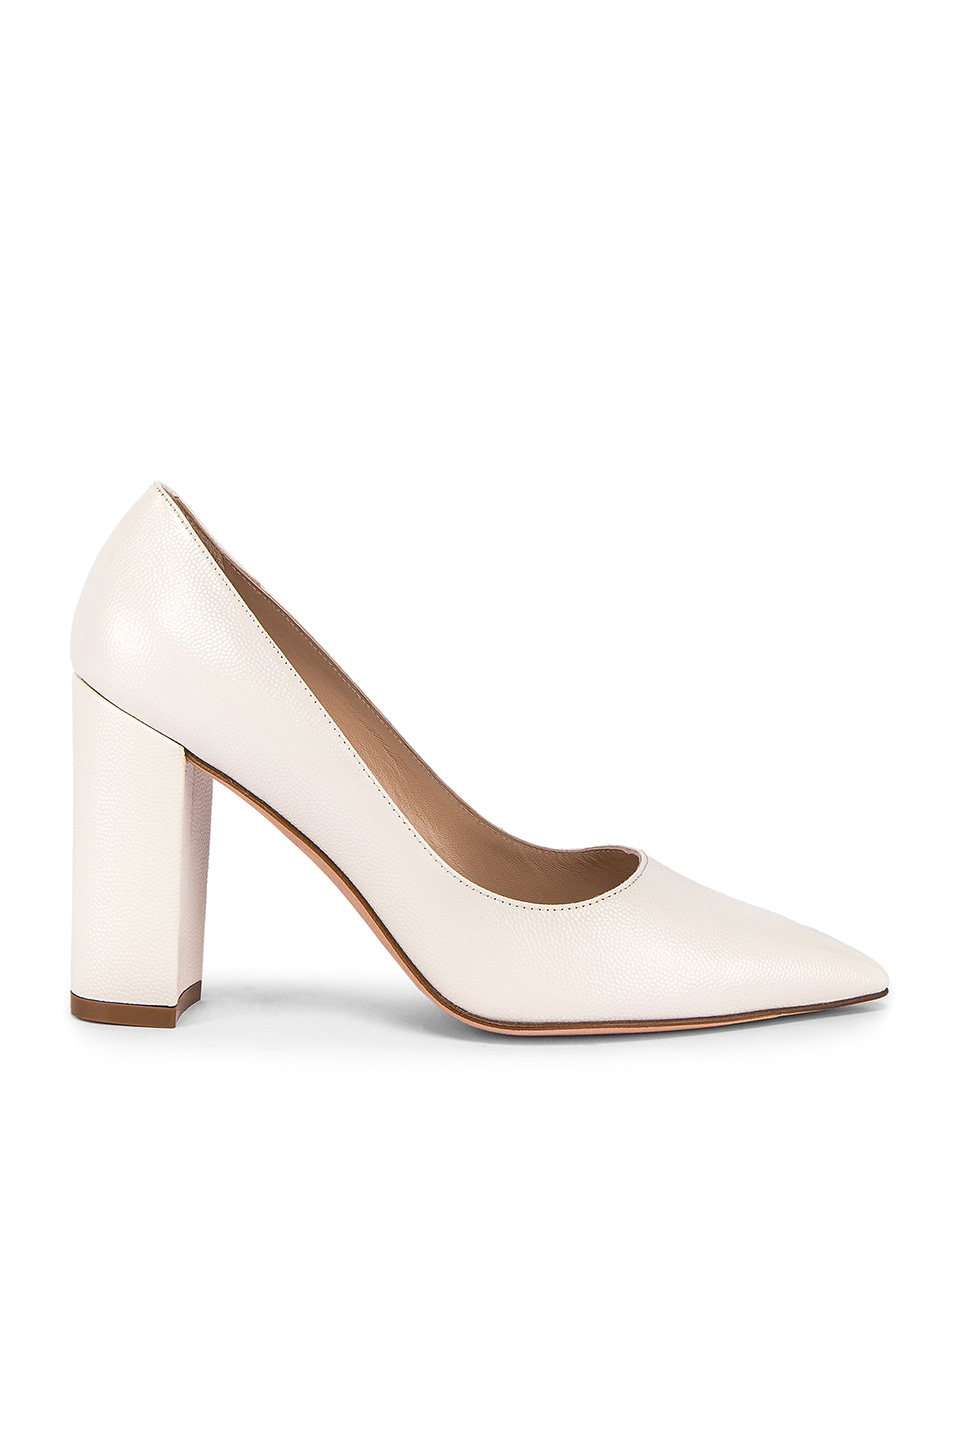 Stuart Weitzman Laney Heel in Cream